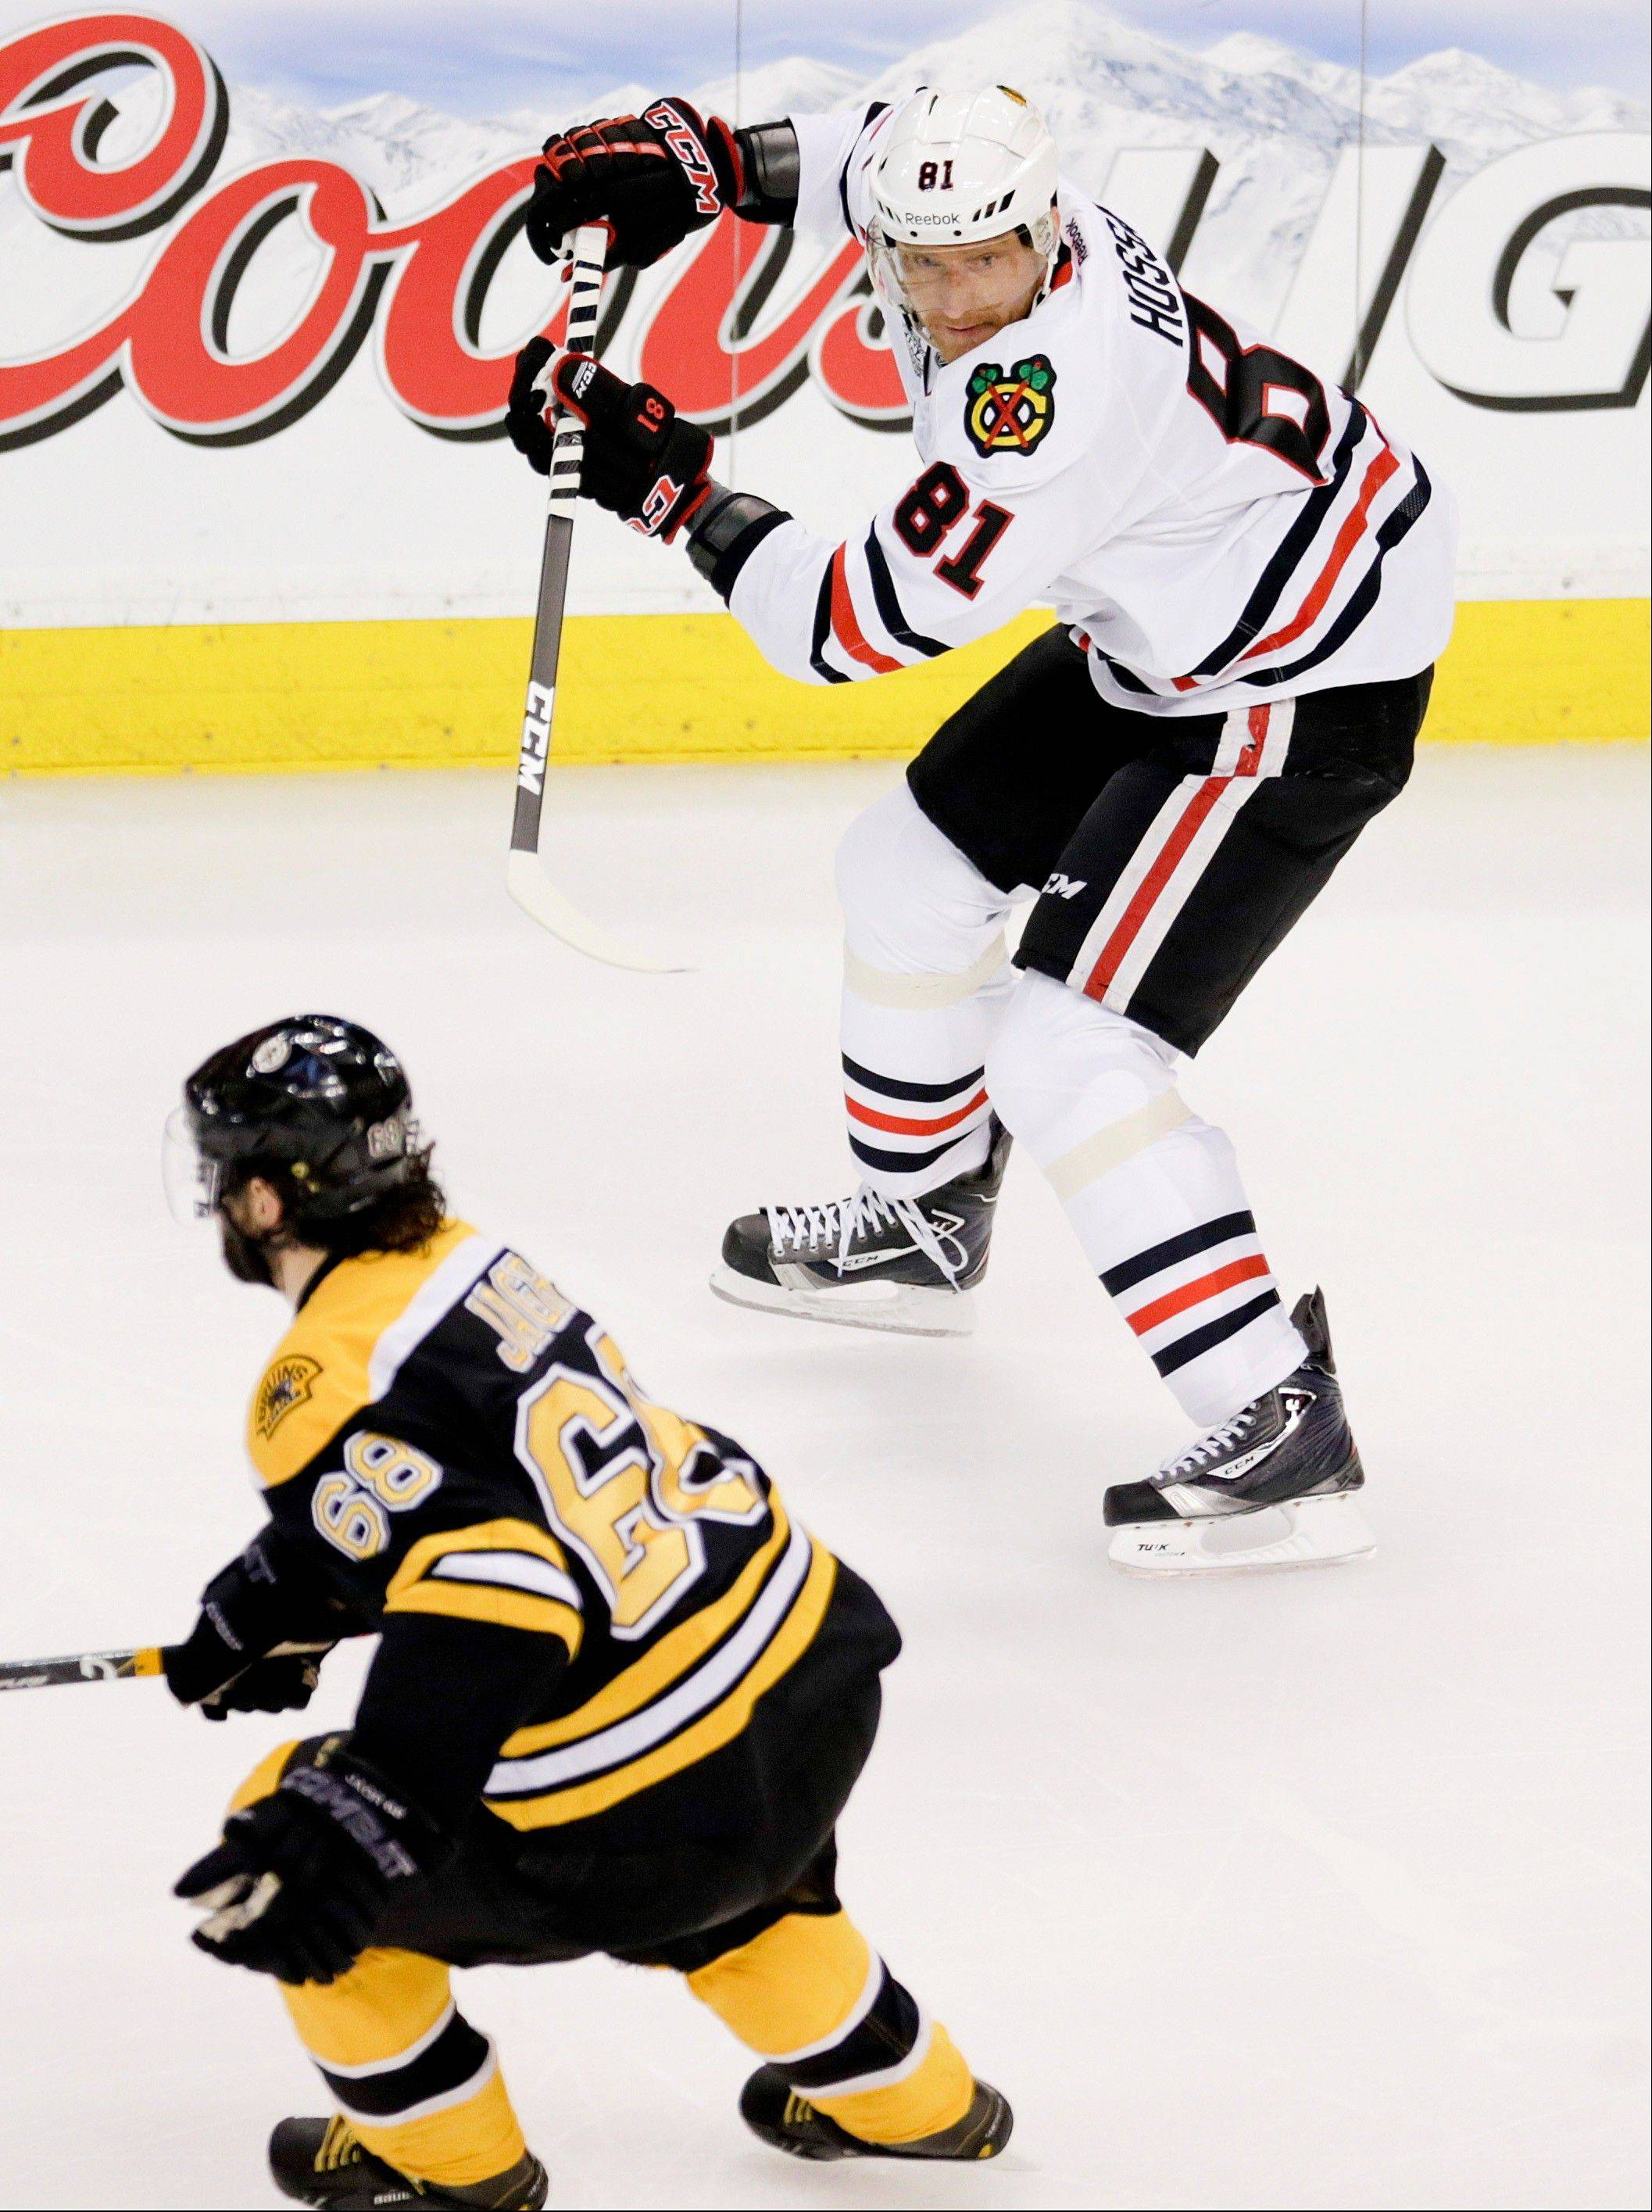 Chicago Blackhawks right wing Marian Hossa (81), of Slovakia, looks for a pass as Boston Bruins right wing Jaromir Jagr (68), of the Czech Republic defends, during the first period in Game 4 of the NHL hockey Stanley Cup Finals.